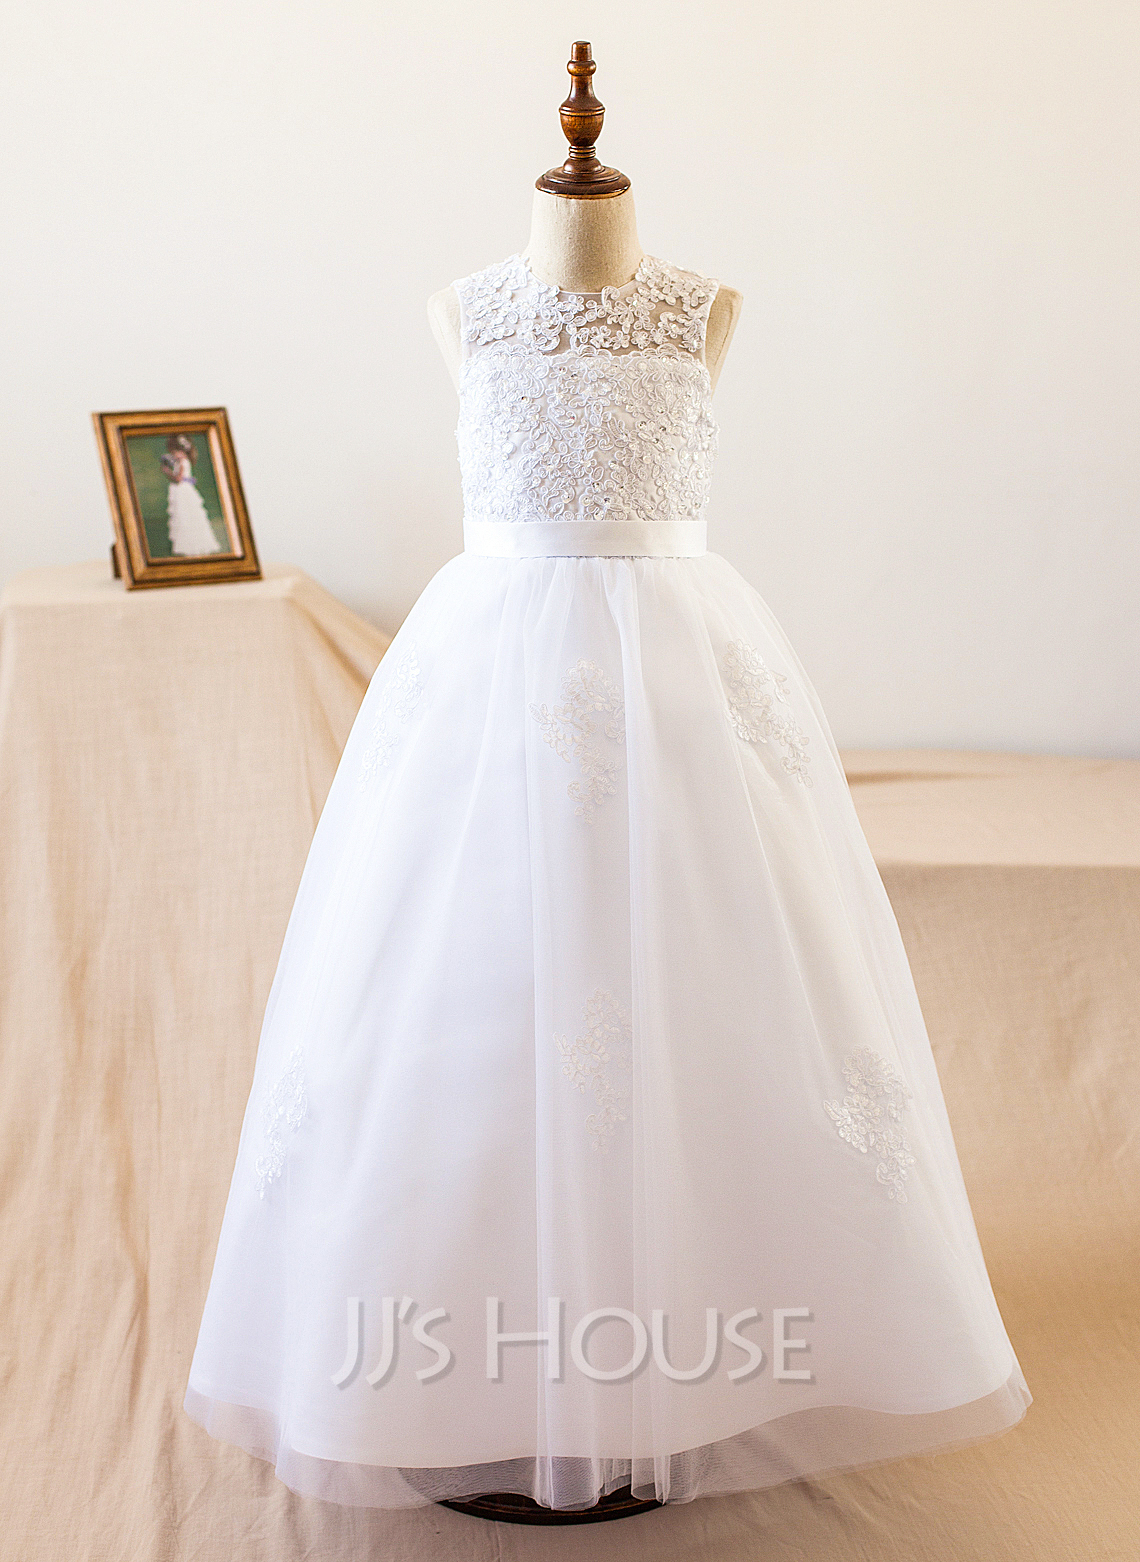 A-Line/Princess Floor-length Flower Girl Dress - Satin/Tulle Sleeveless Scoop Neck With Beading/Appliques